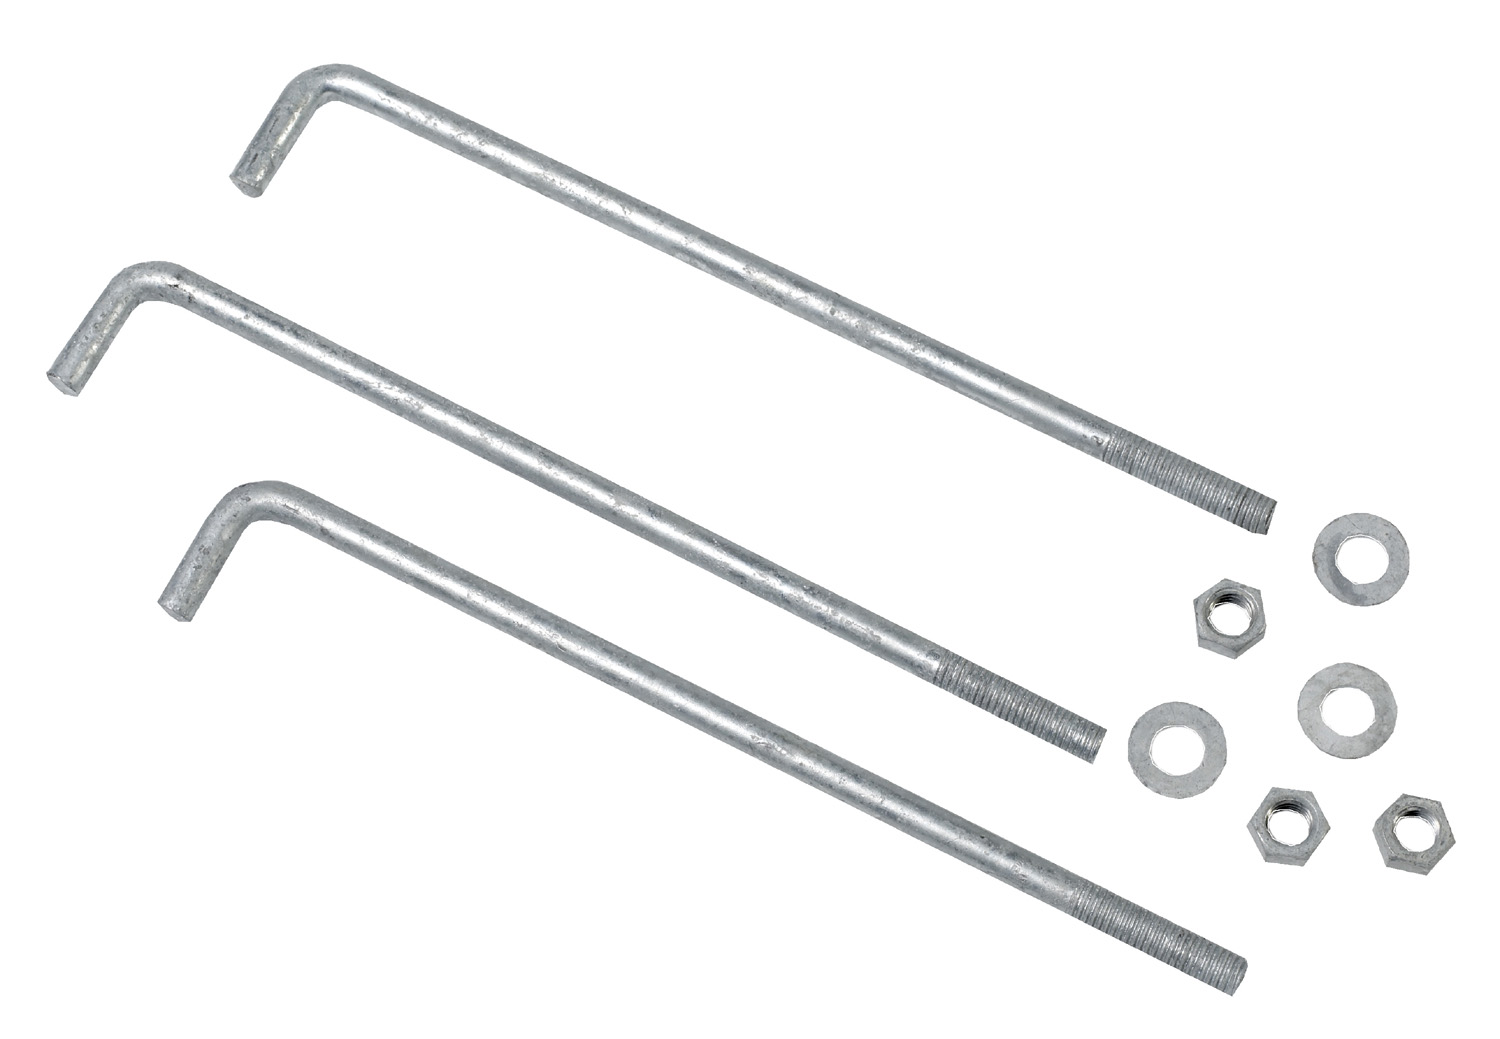 7700-0-12, Mutual Industries 7700-0-12 Anchor Bolts, 1/2 x 12 (Pack of 50), Mutual Industries